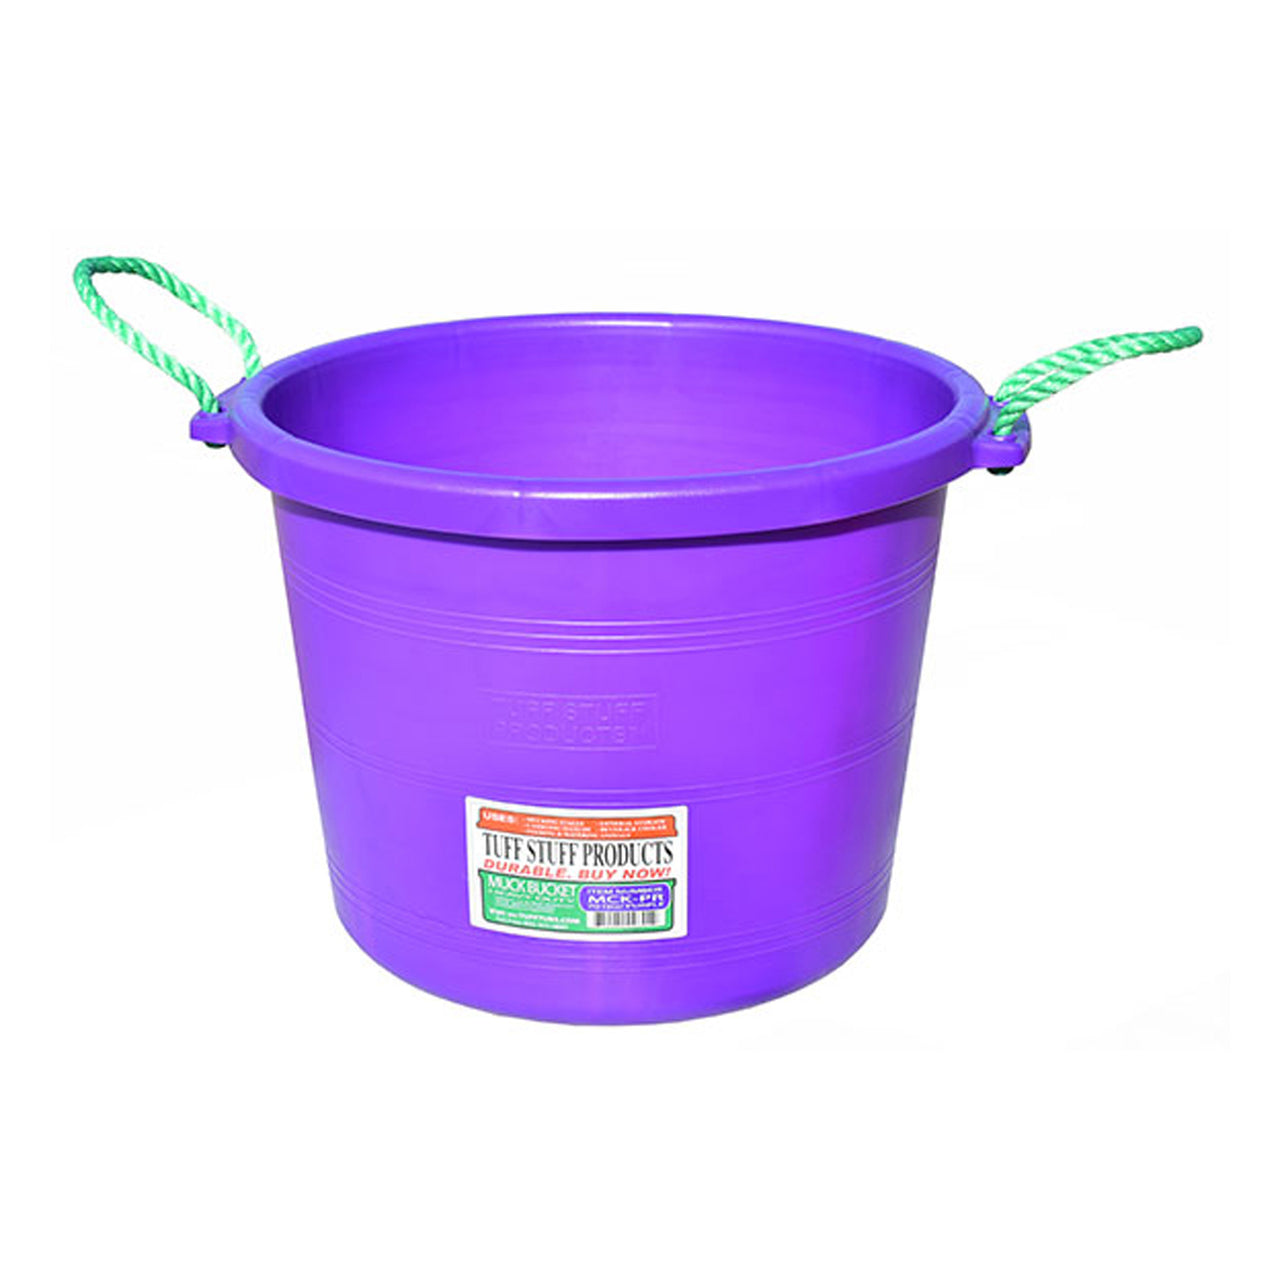 Tuff Stuff Muck Bucket 70 Qts - Purple - Buckets Pails Feeders Scoops Tubs Bottles Tuff Stuff - Canada